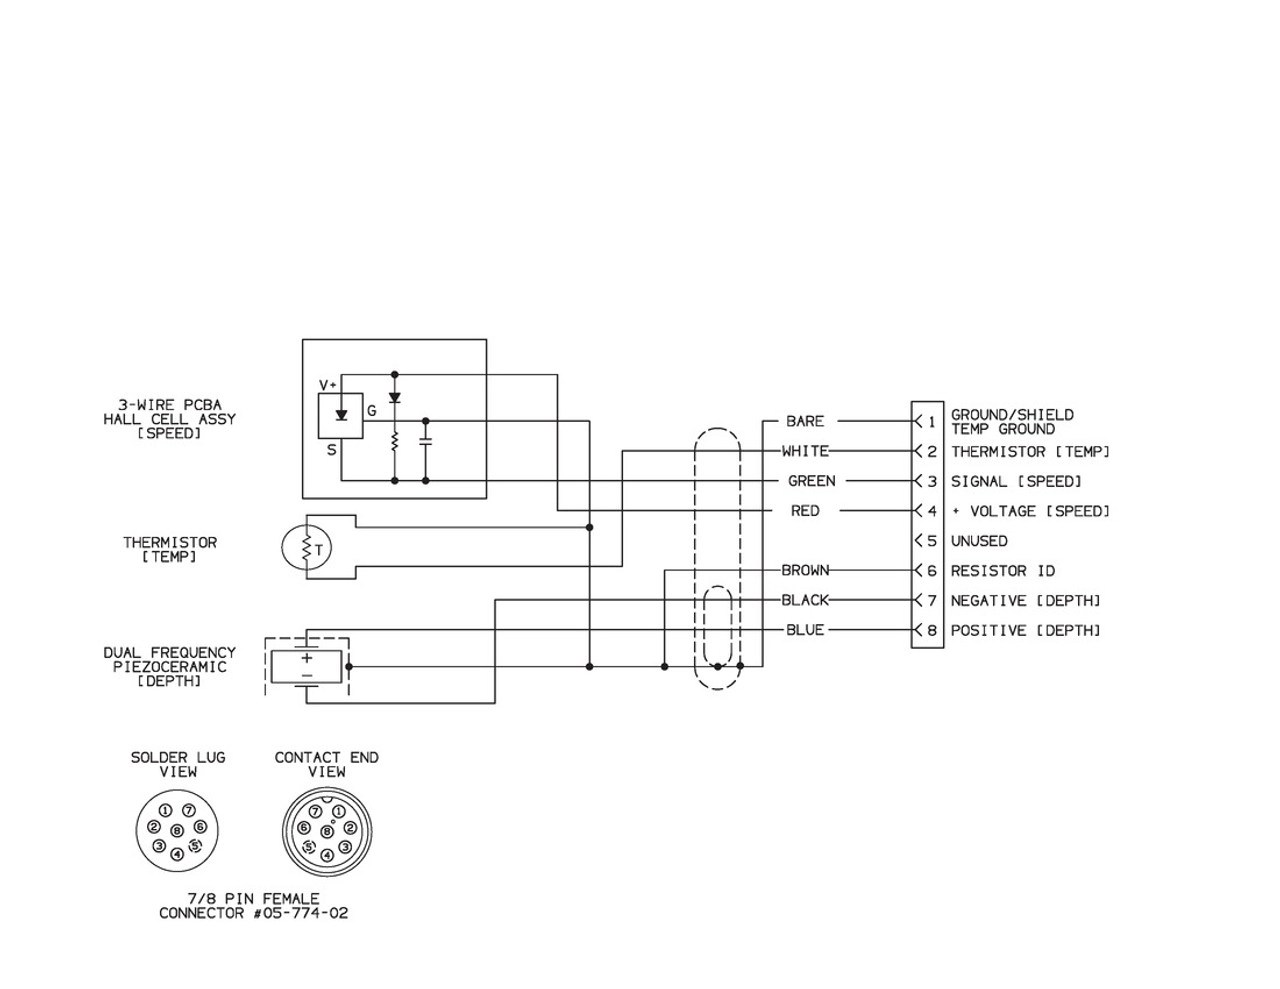 resistor wiring diagram 7 wire pigtail wiring library depth speed temperature p66 600w transducers [ 1280 x 989 Pixel ]